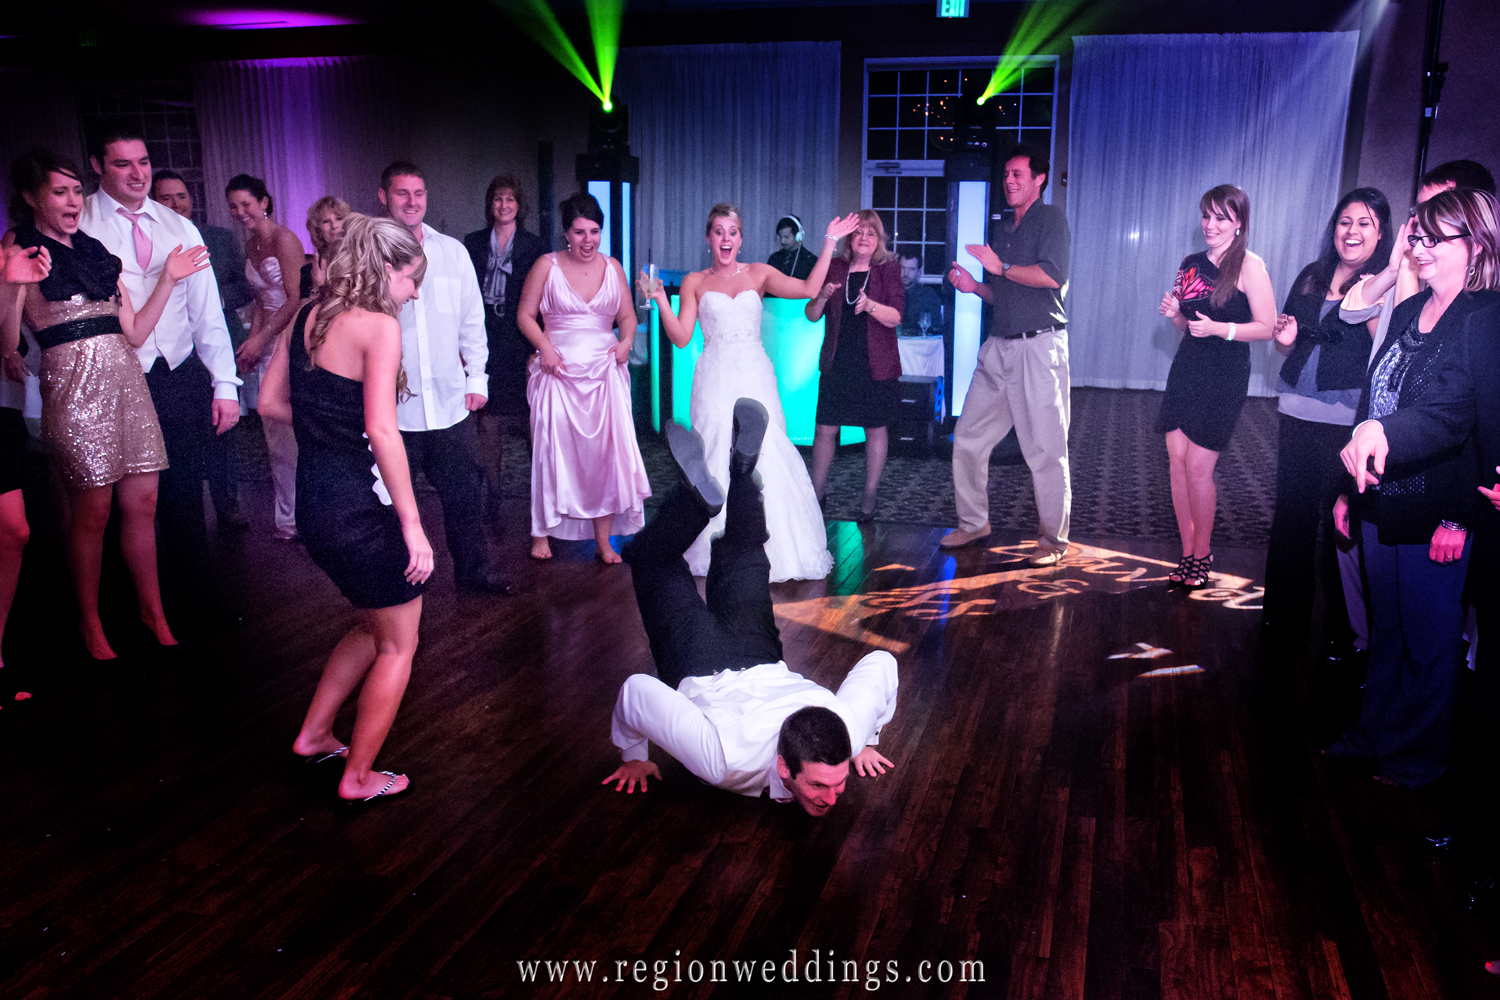 A party breaks out on the dance floor at a wedding reception at Avalon Manor in Northwest indiana.